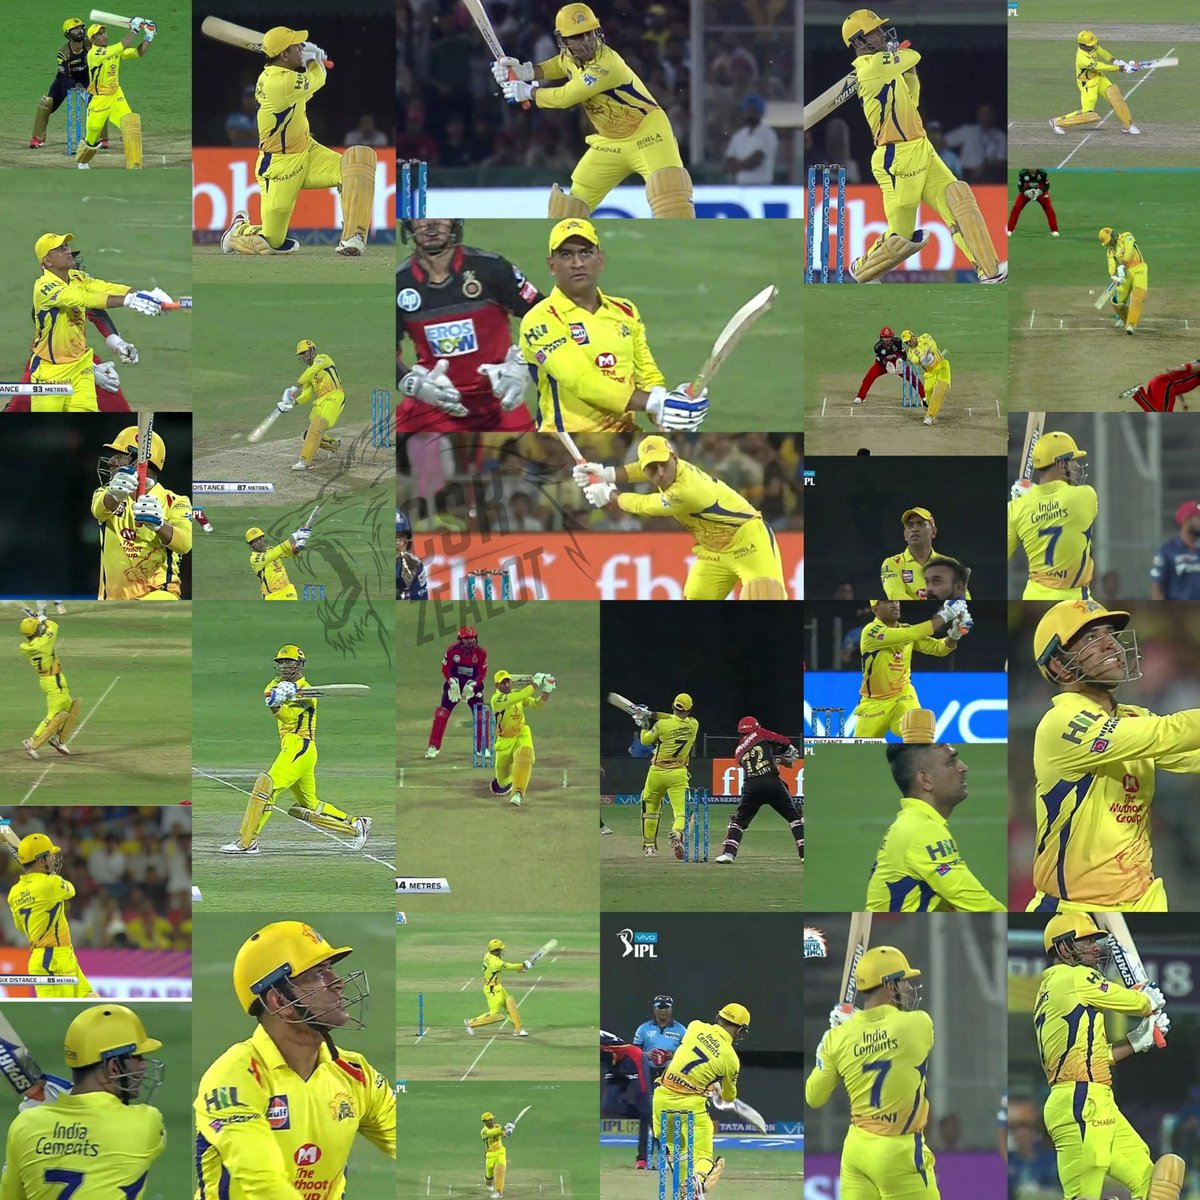 Best Pics from #ipl2019   these all are my favorite   #HappyBirthdayDhoni<br>http://pic.twitter.com/nzmiA80bJr